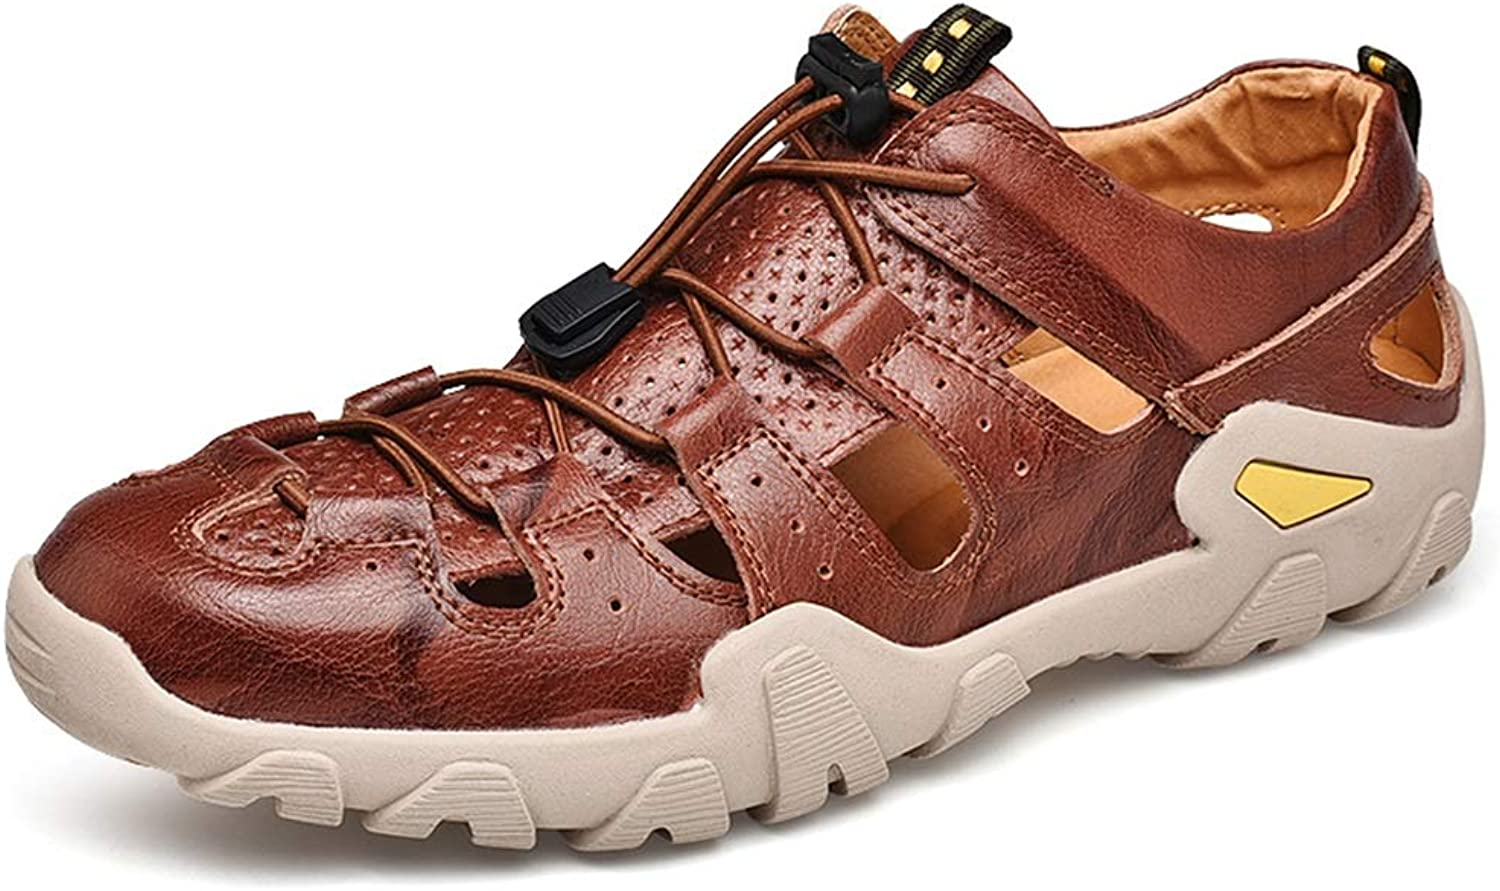 ChengxiO Outdoor Summer Sandals Men's Tide 2019 New Outdoor Leather Casual Hole Breathable Roman shoes Men's Sandals Soft Cow Leather shoes (color   Brown, Size   260mm)